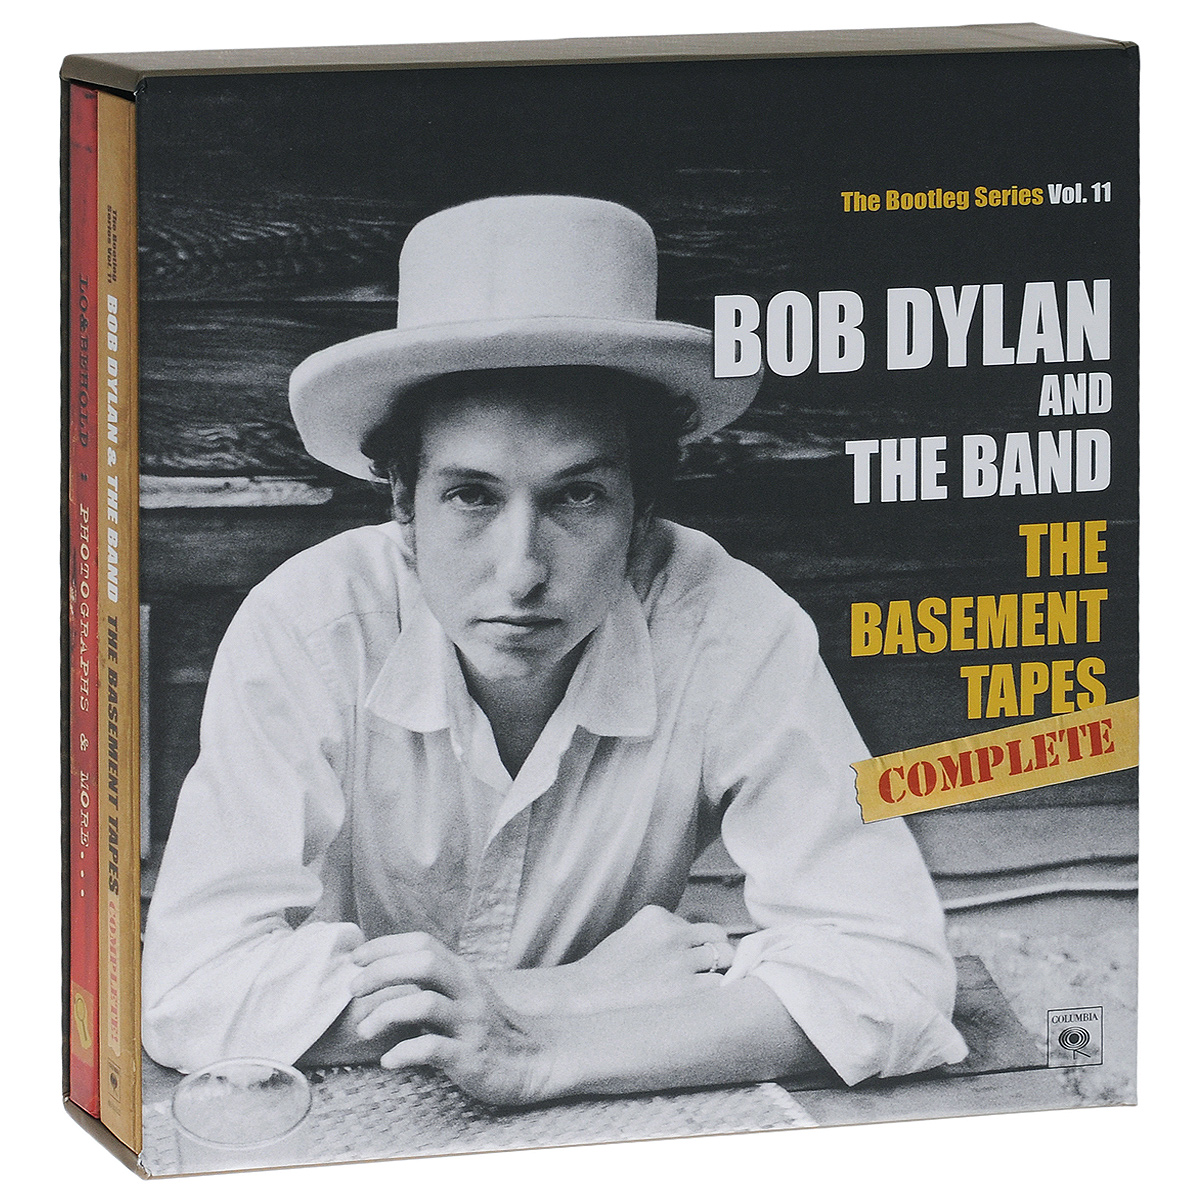 Bob Dylan And The Band Bob Dylan and The Band. The Bootleg Series Vol. 11: The Basement Tapes Complete. Limited Deluxe Edition (6 CD) bob dylan and the band bob dylan and the band the bootleg series vol 11 the basement tapes complete special deluxe 2 cd 3 lp